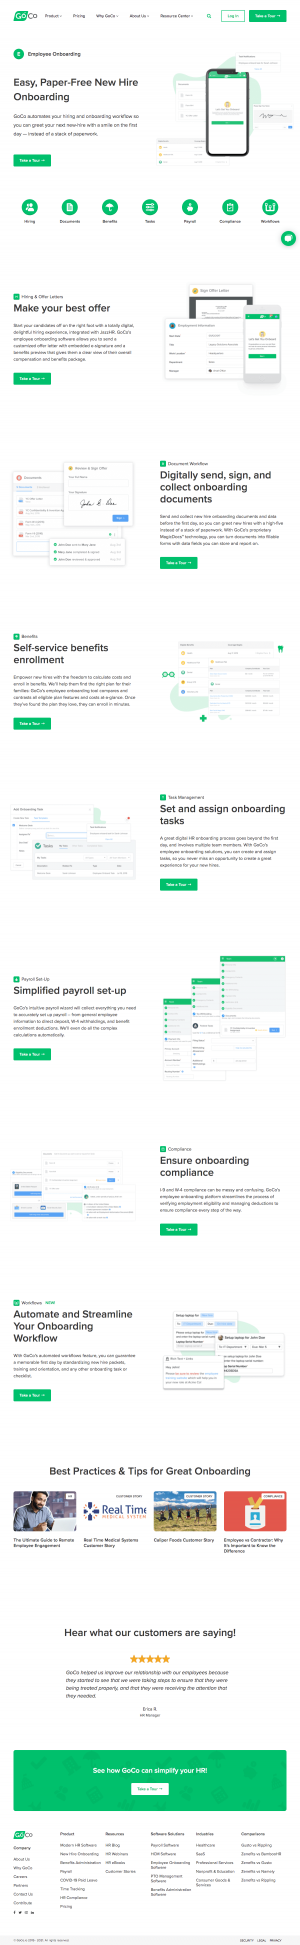 Goco – Features page 1